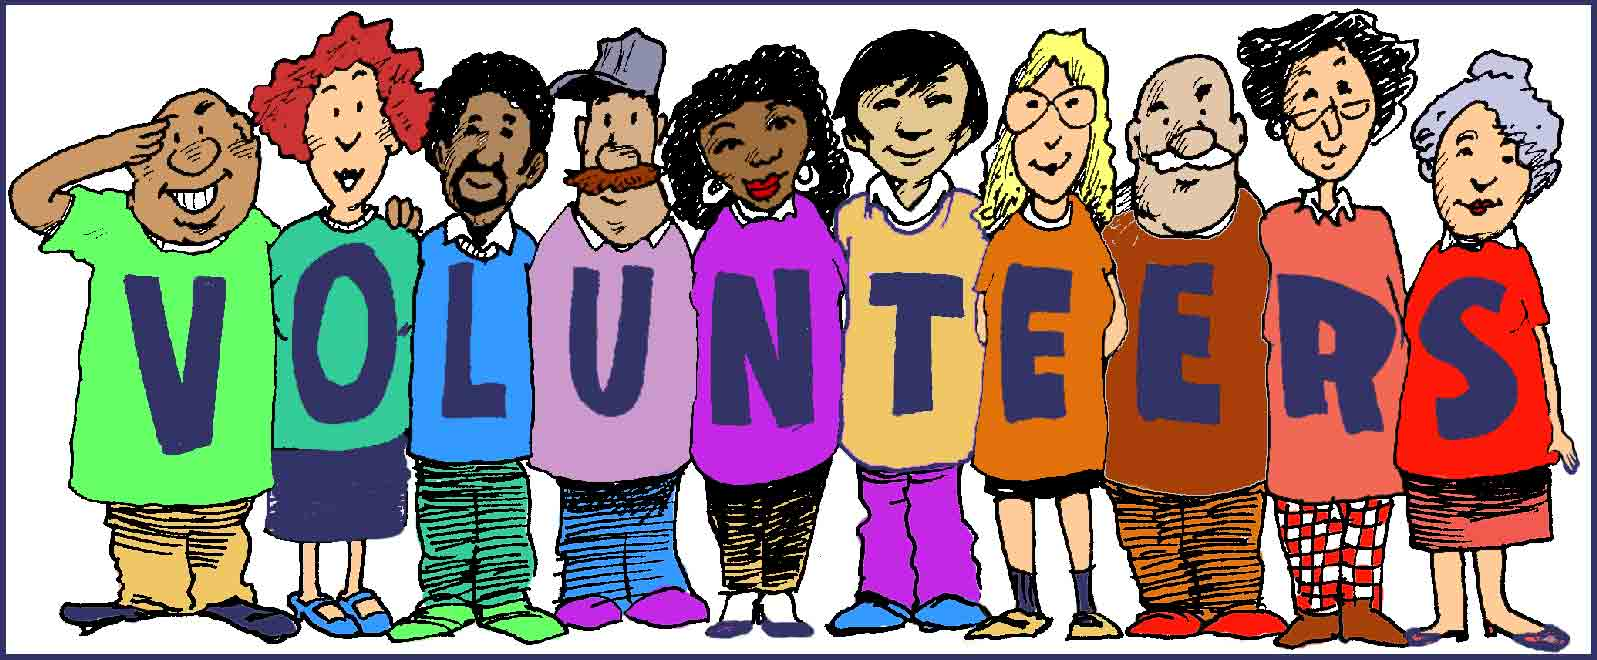 Volunteer clipart person. Declining volunteering and the